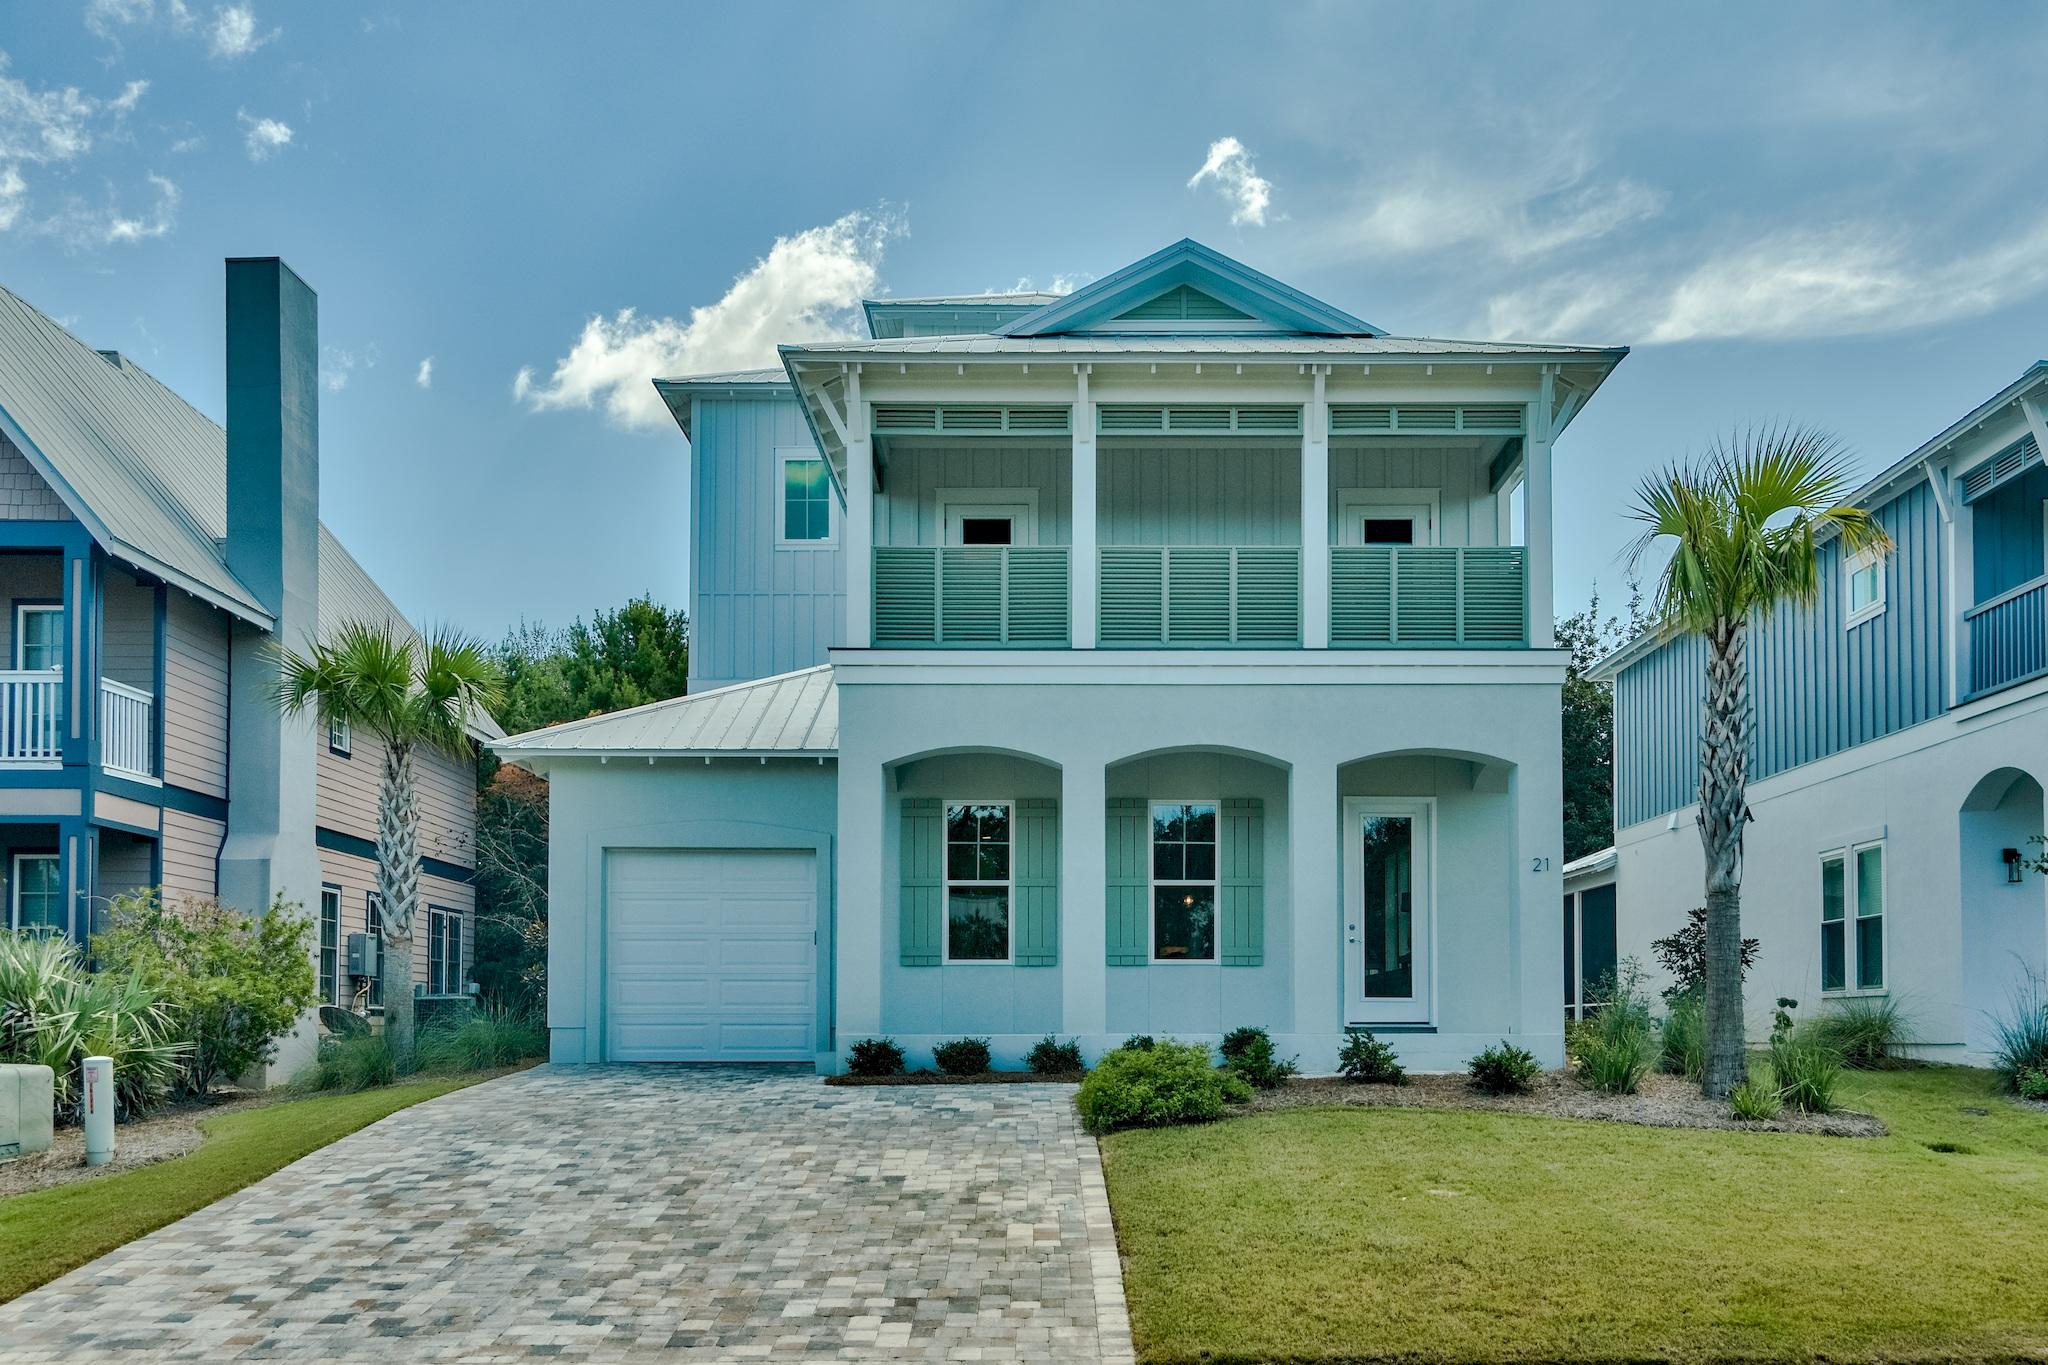 Photo of home for sale at Lot 52 Willow Mist, Inlet Beach FL